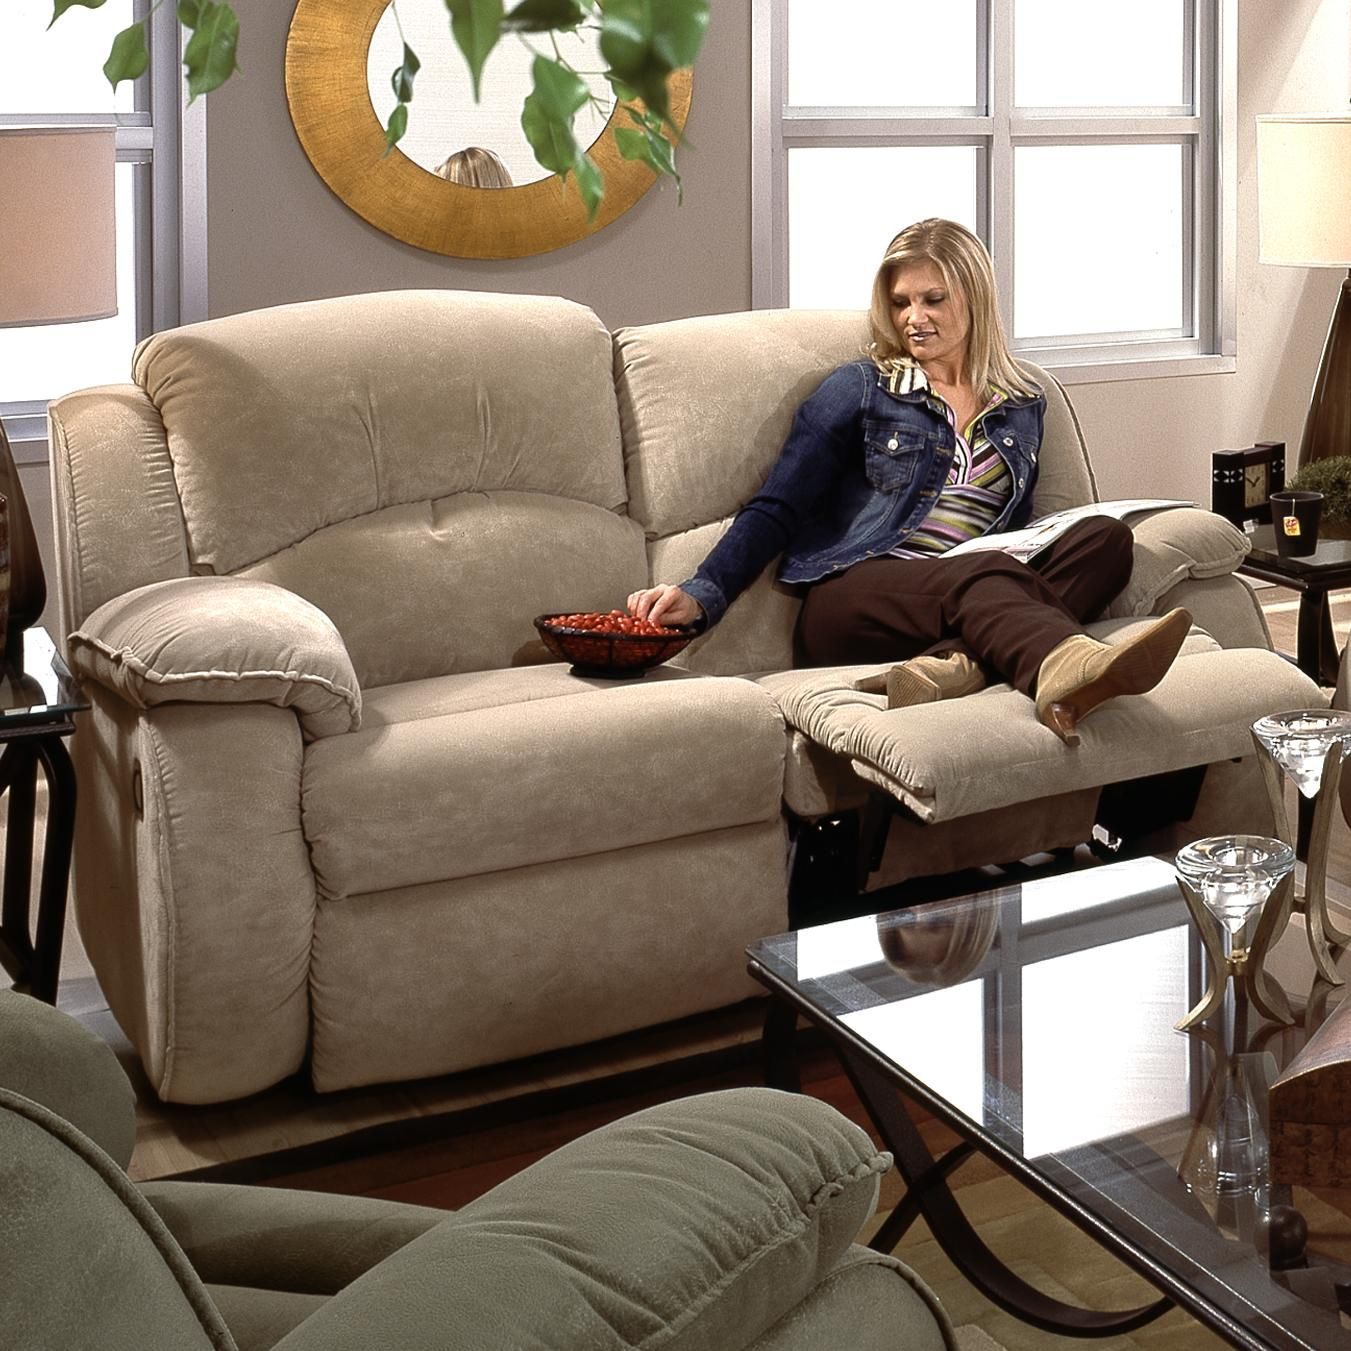 Cagney double reclining loveseat by southern motion idea for